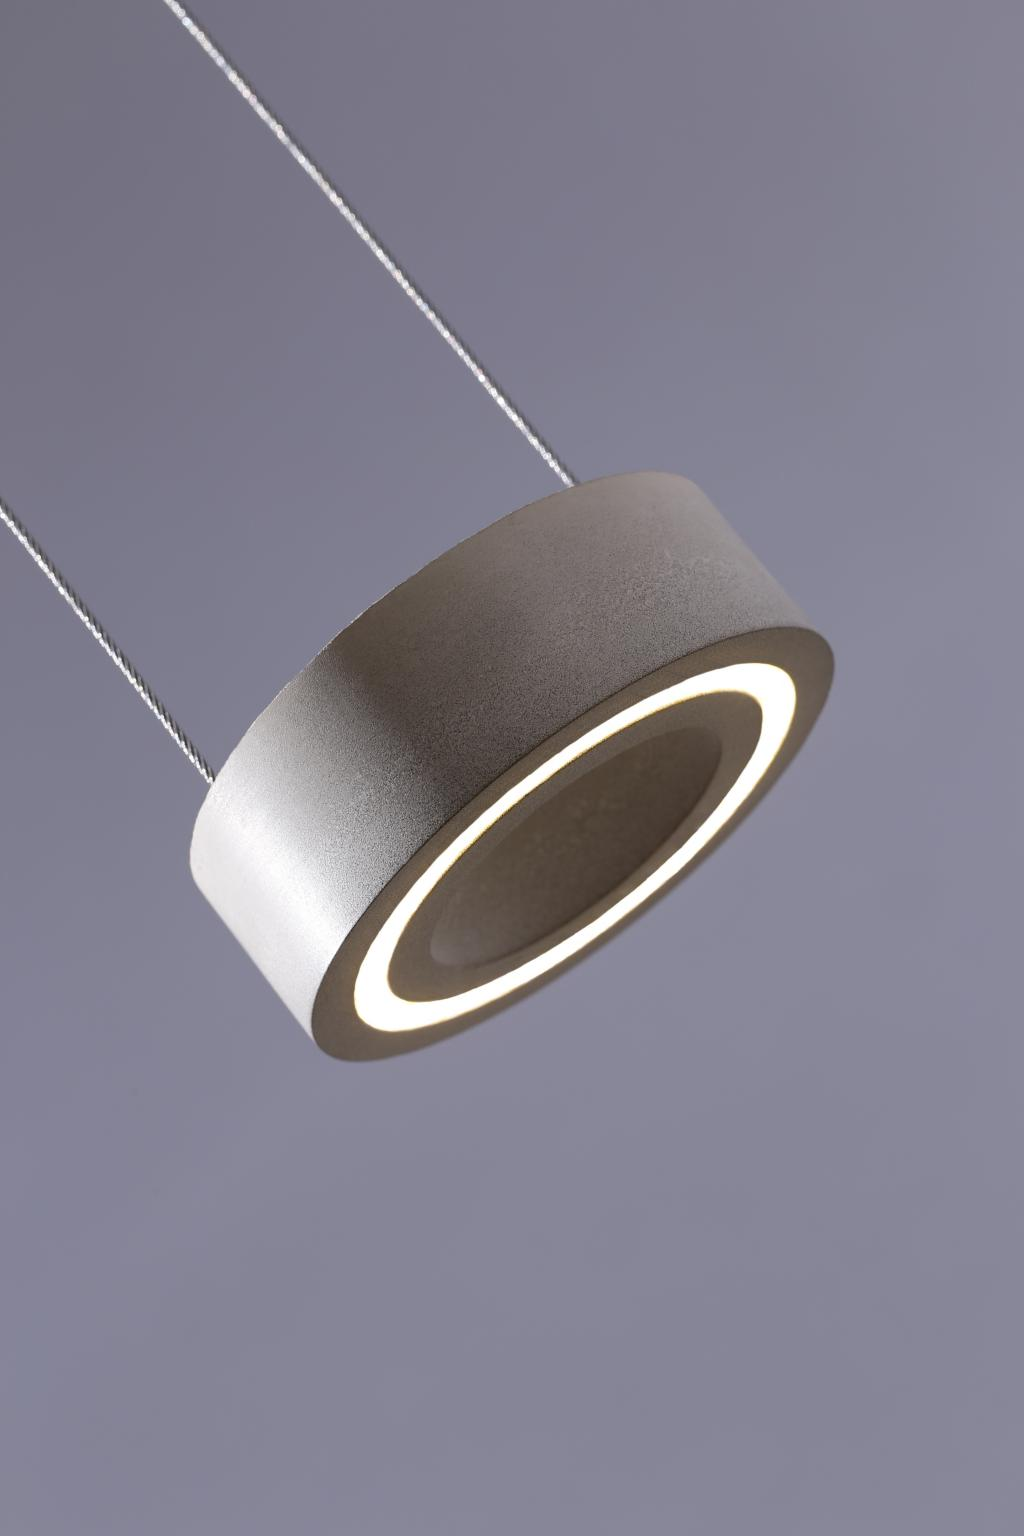 ALBLUXX Oculus. Pendant luminaire made of concrete with cutting edge LED technology